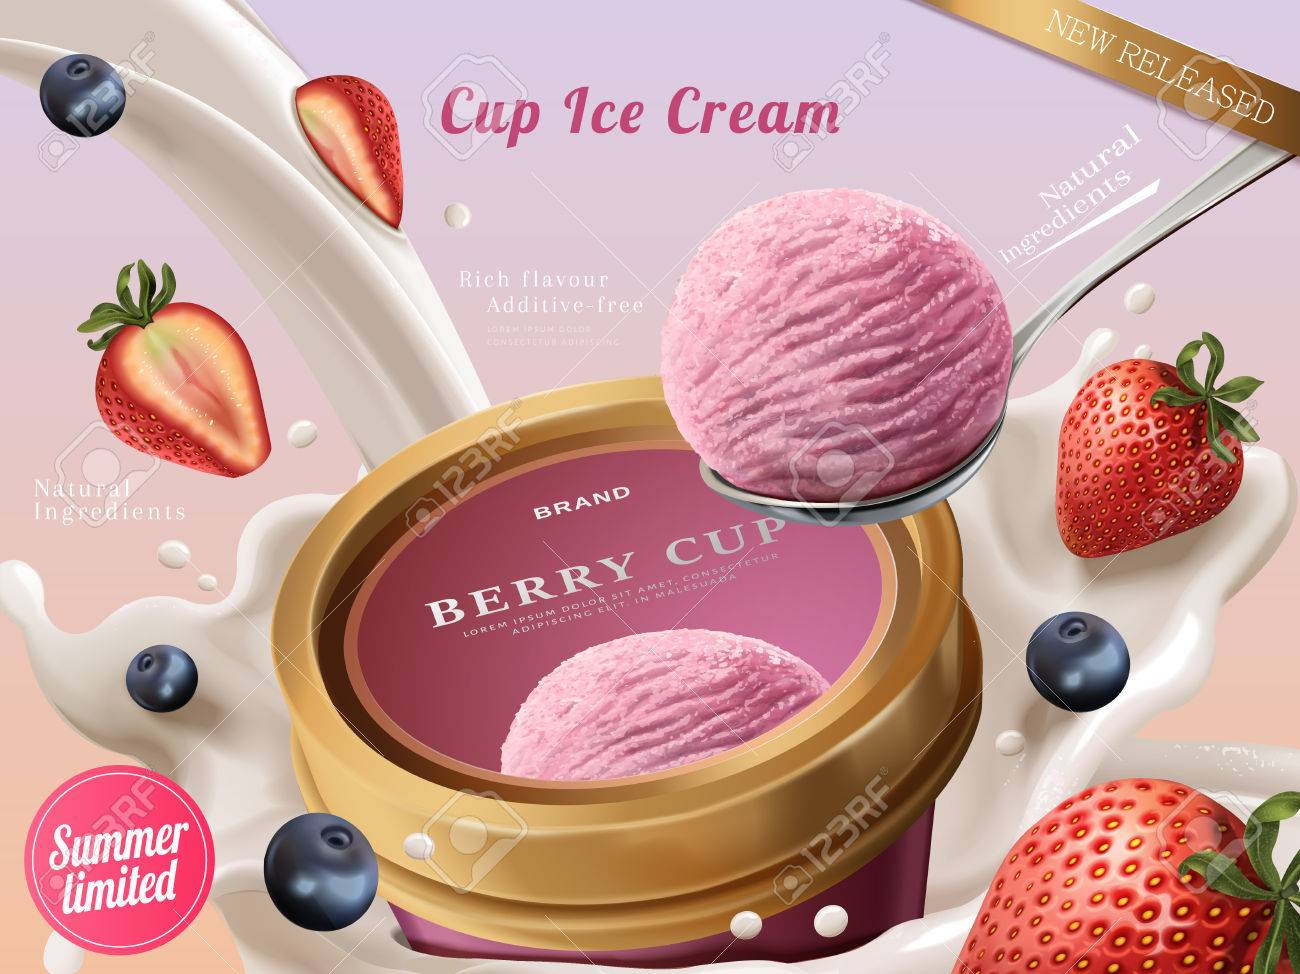 Berry ice cream cup ads, a scoop of premium strawberry ice cream with flowing milk and fruits in 3d illustration - 82761881